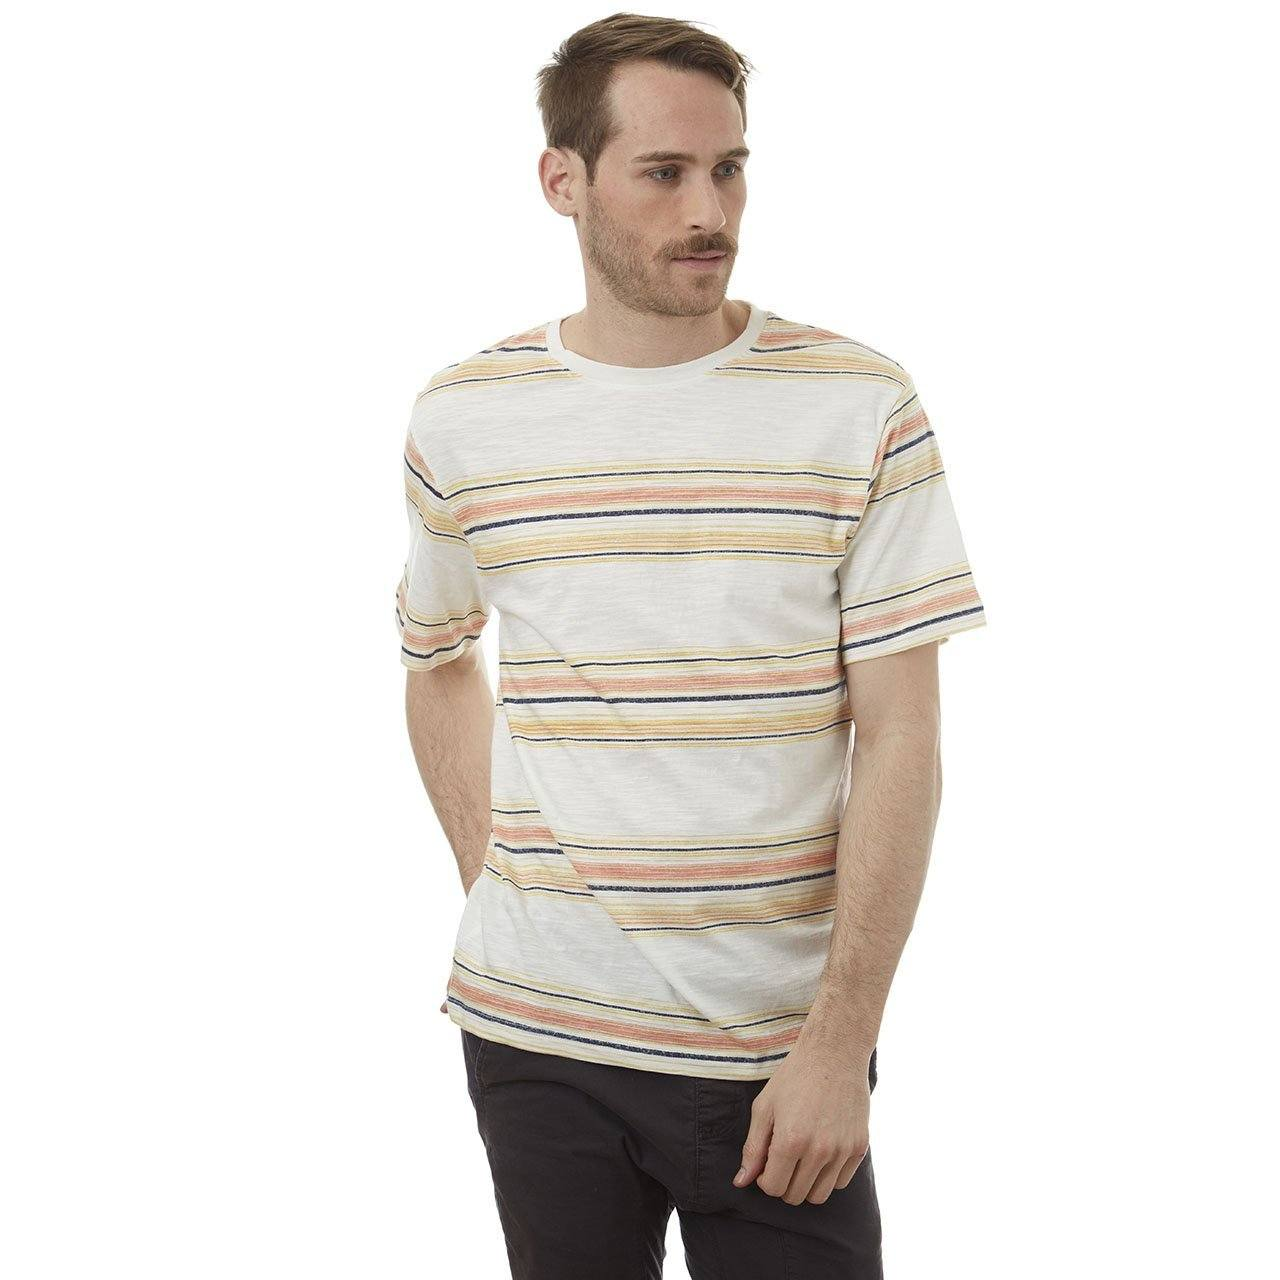 Short Sleeve Tee - Russel Striped Tee